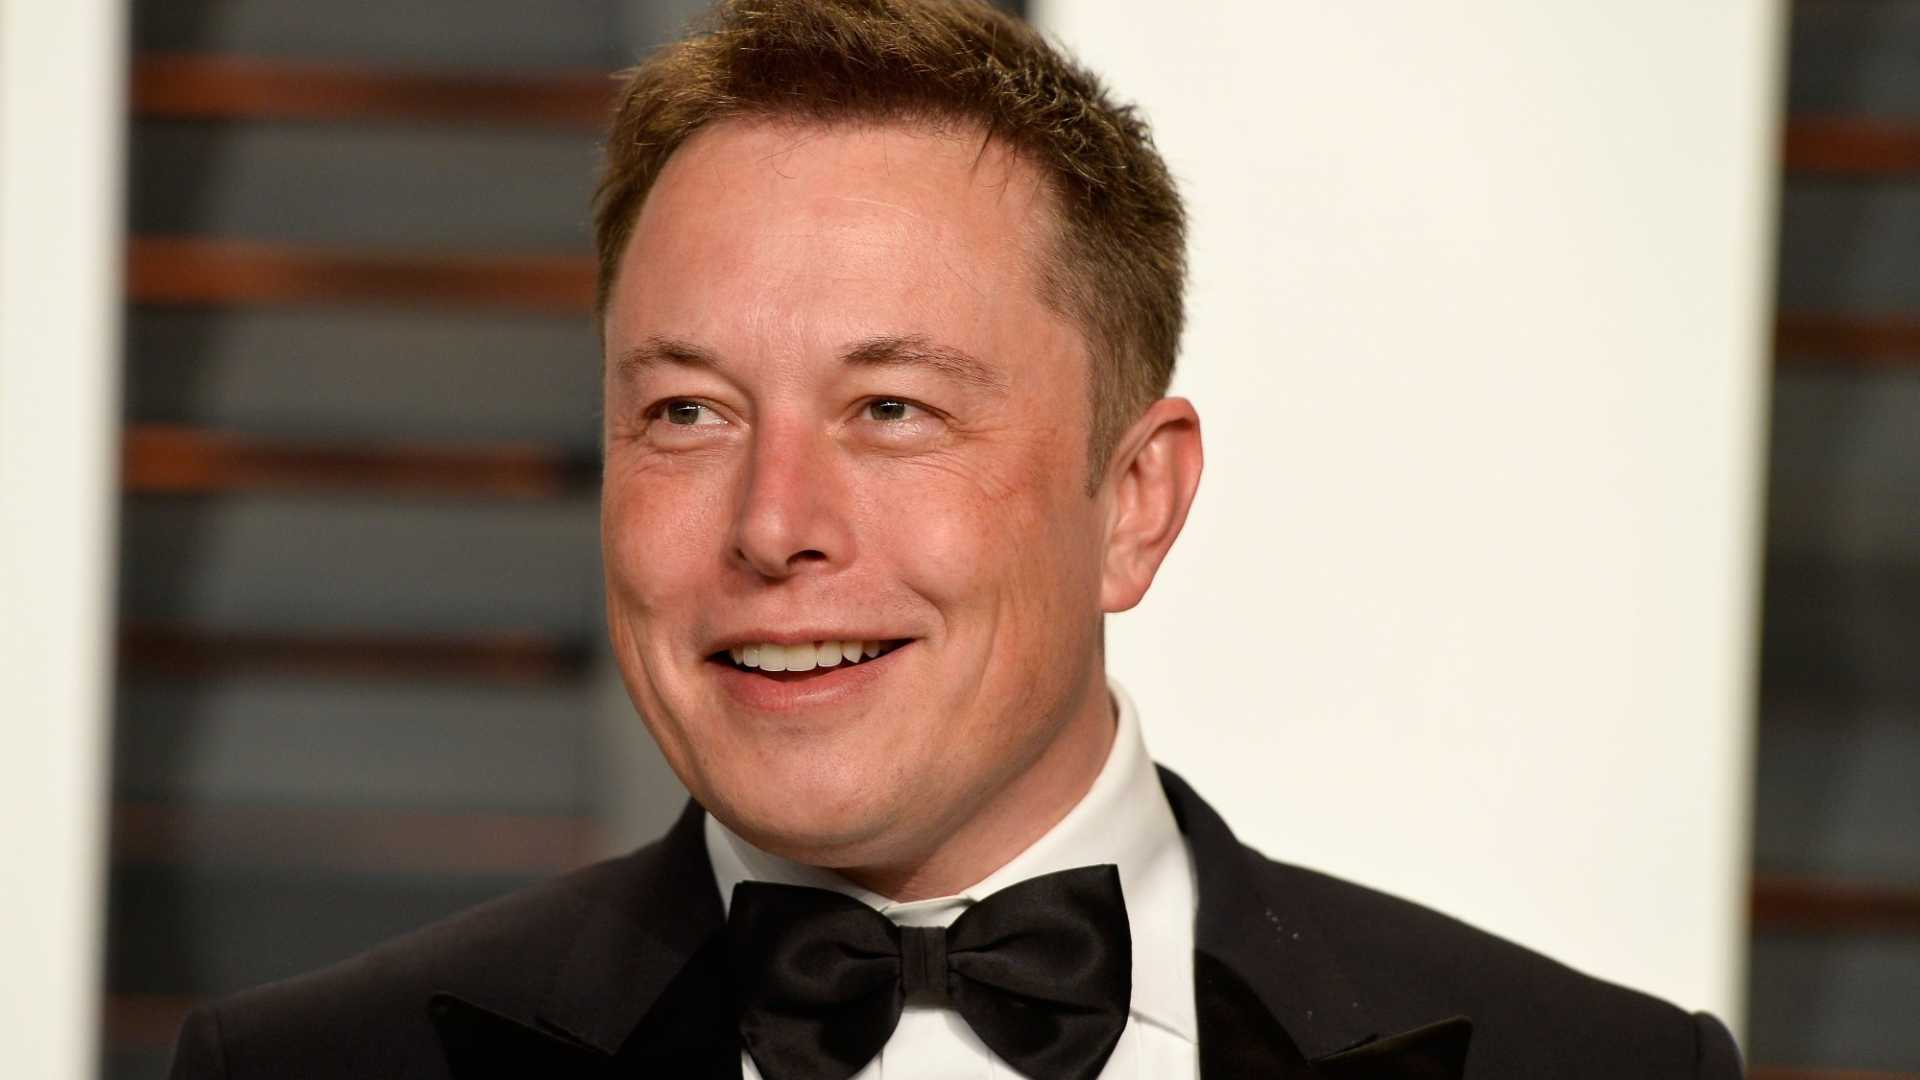 Elon Musk Uses This Critical Thinking Strategy to Guide Him in Business (and You Should, Too)